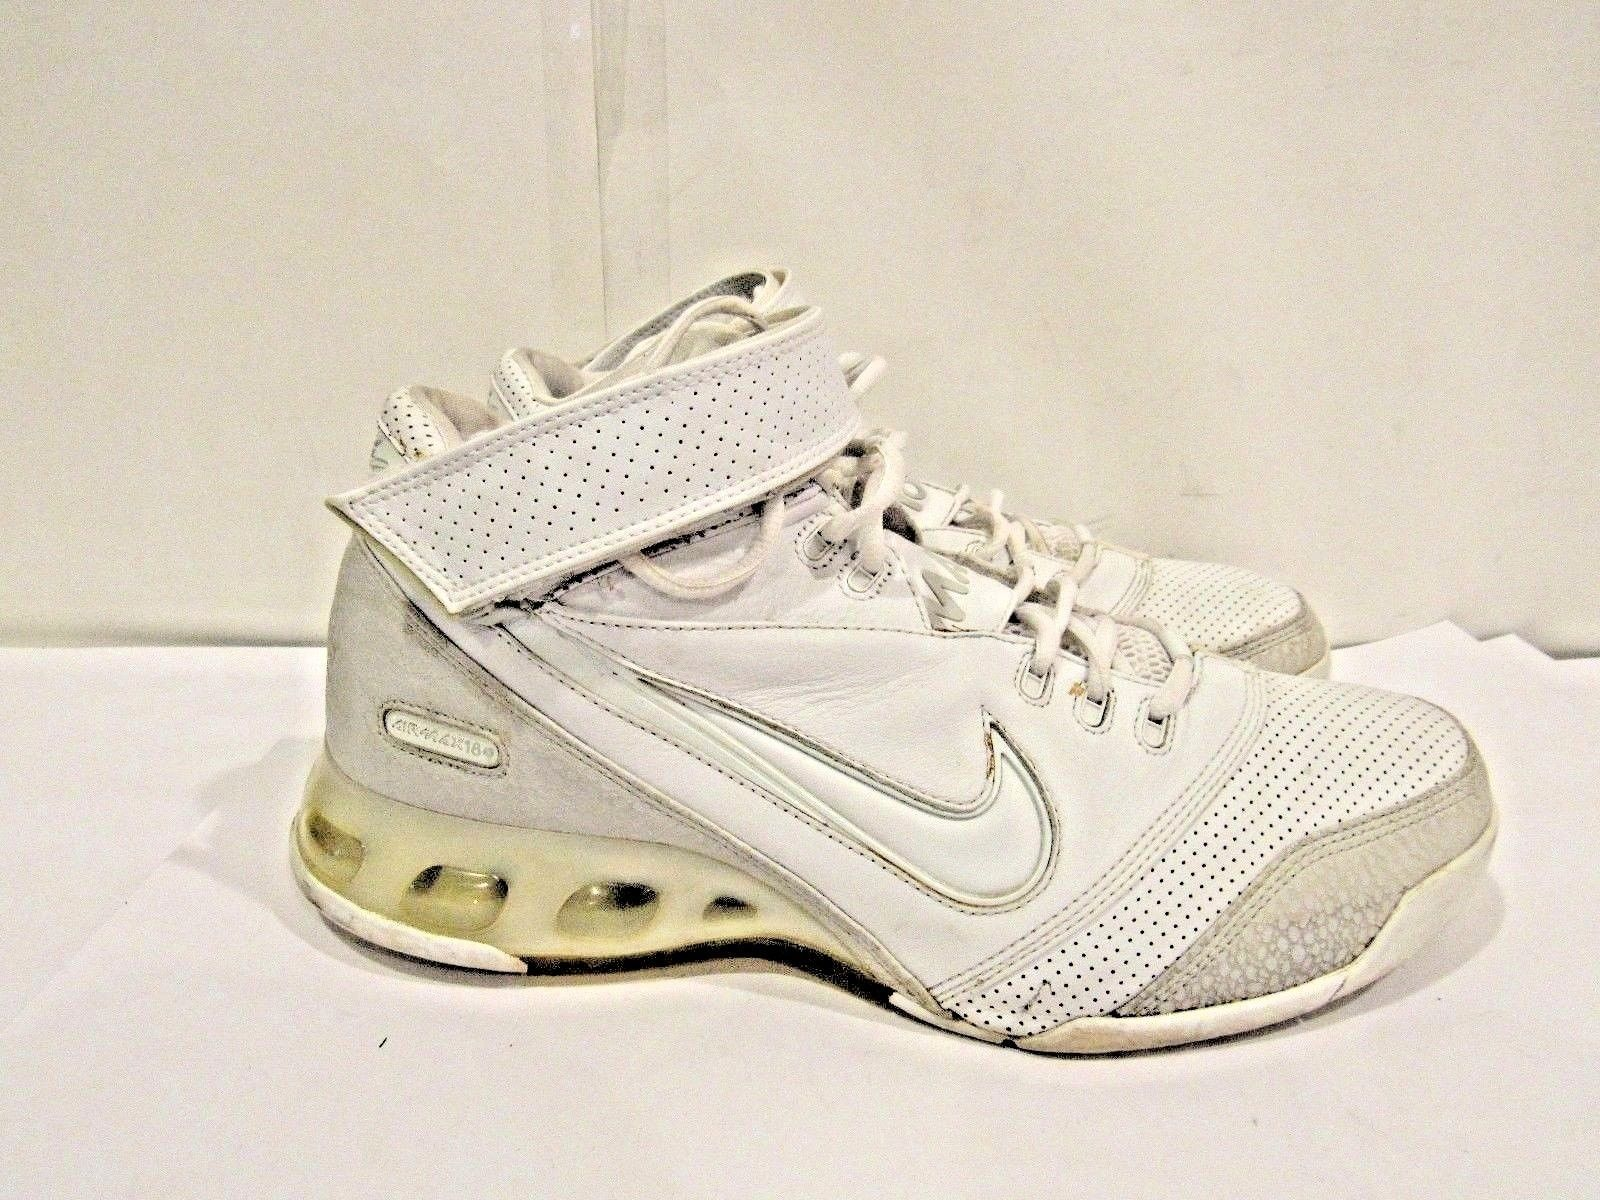 9c95a08f433949 Nike Air Max 180 Size 14 M EU 48.5 White and 50 similar items